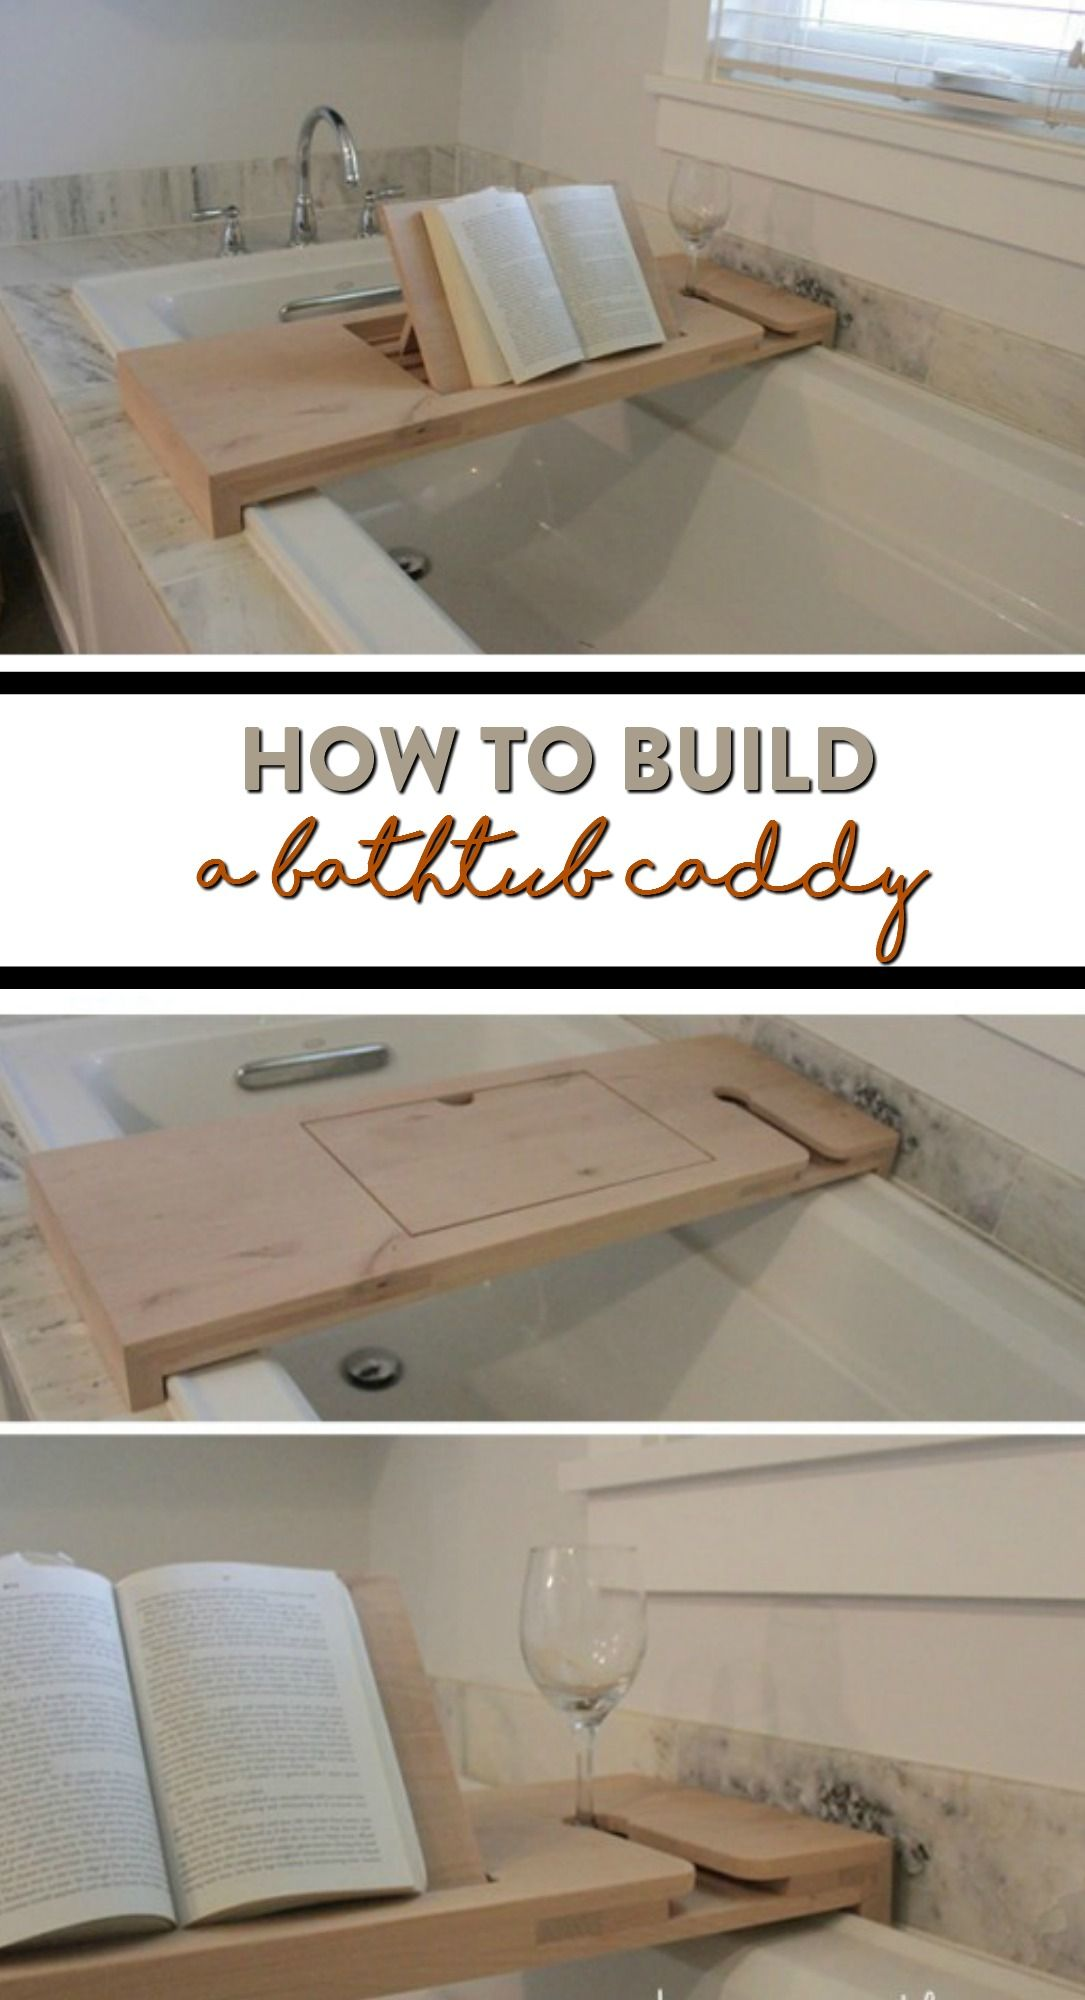 How To Build A Bathtub Caddy Bathtub Caddy Diy Bathtub Bathtub